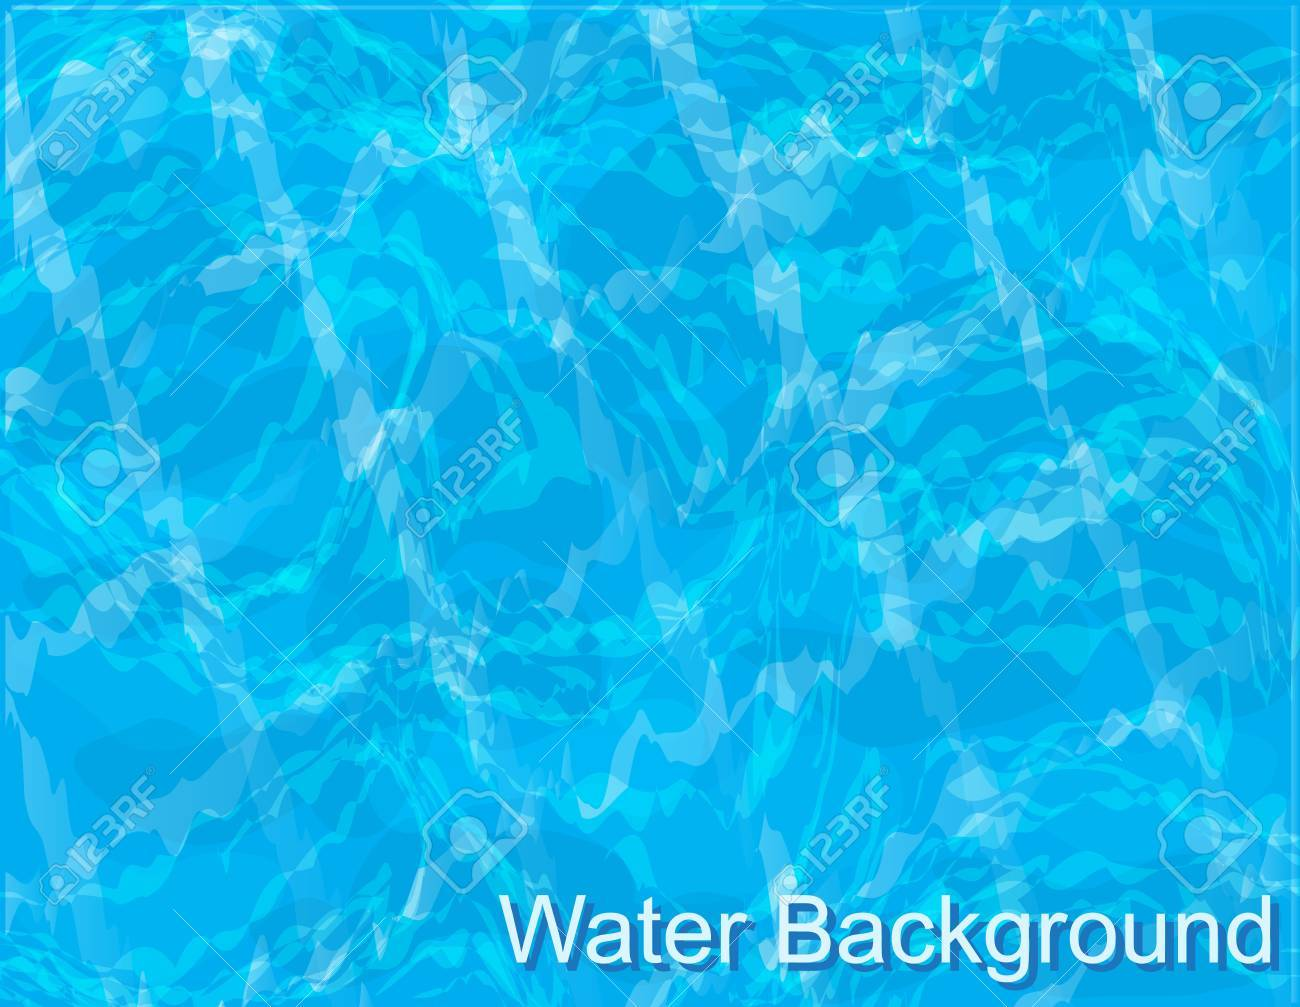 background-blue water with ripples in the pool - 18690782